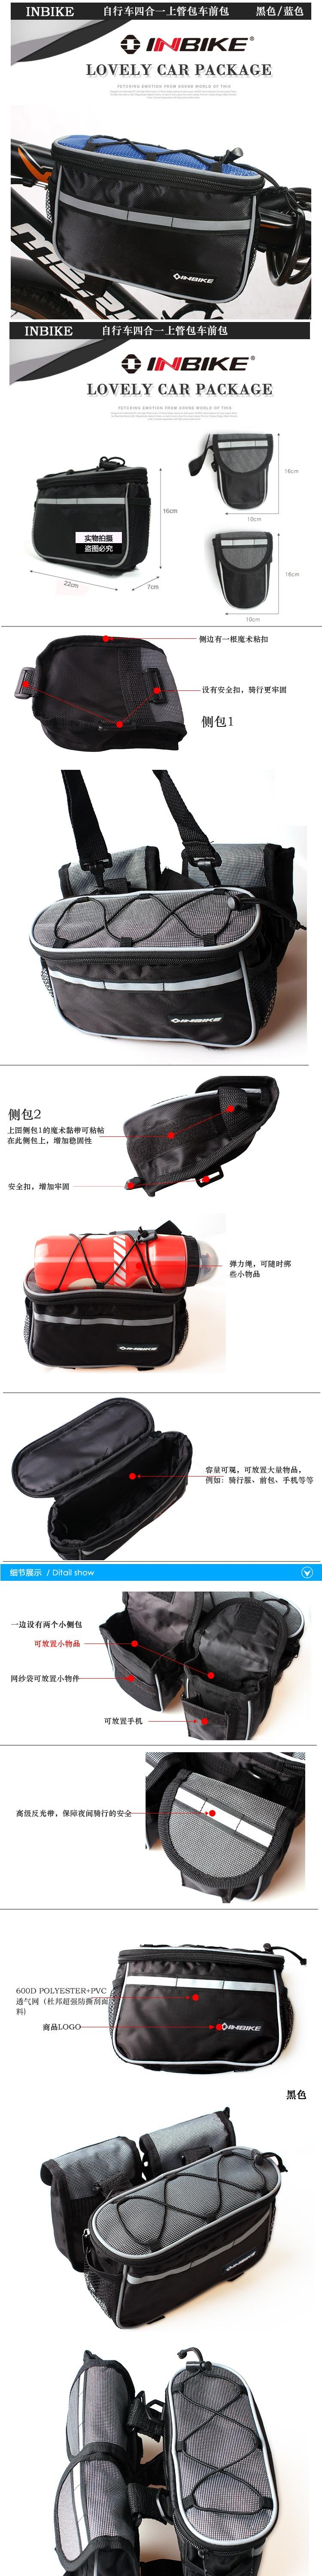 BIKE / BICYCLE 4 IN 1 FRONT POUCH / BAG